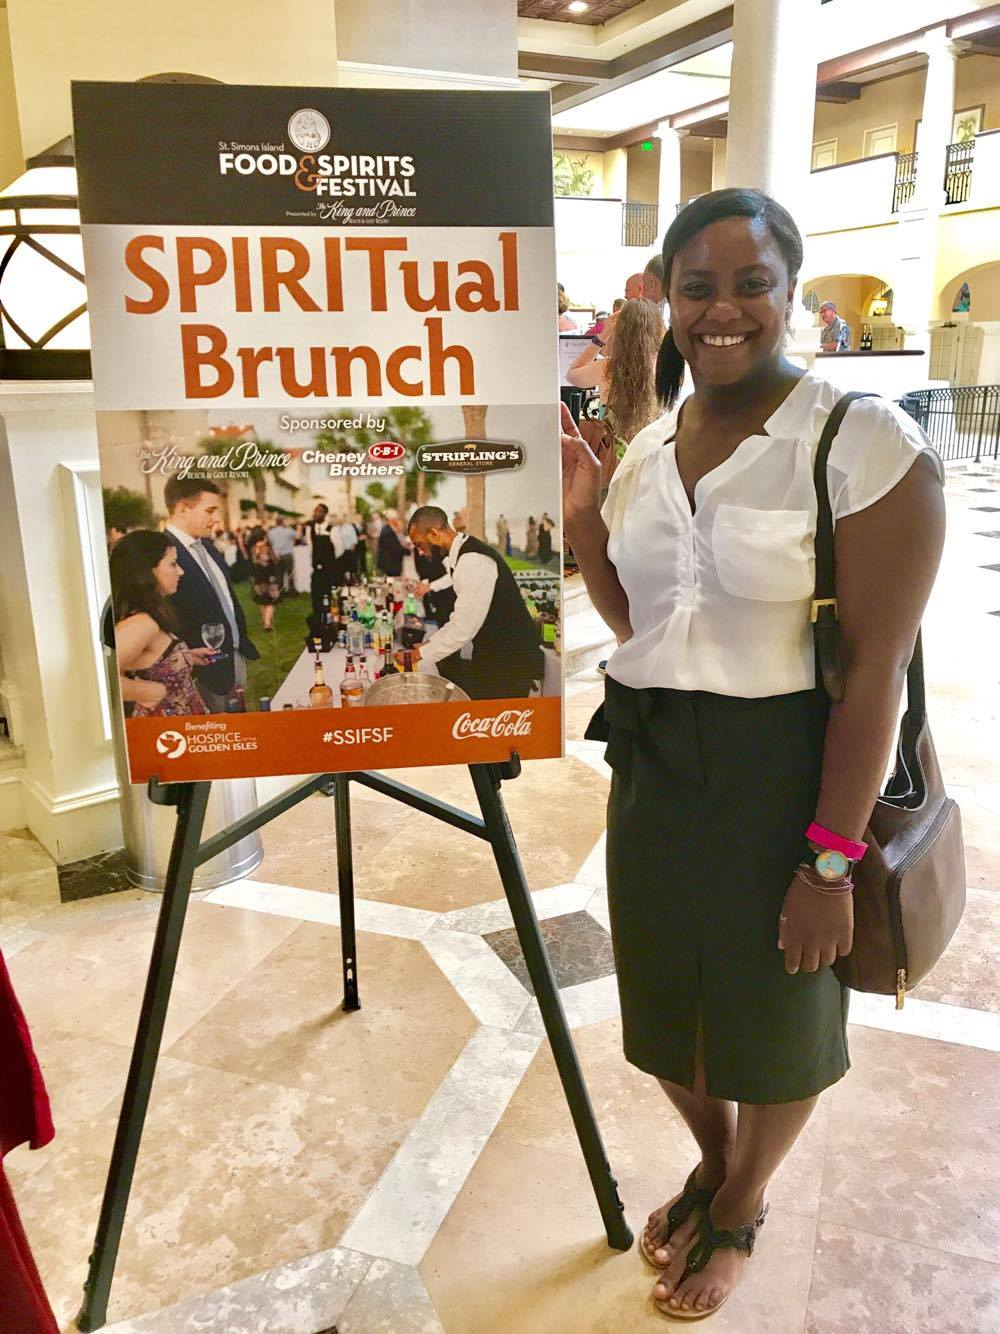 Spiritual Brunch - St Simons Food Spirits Festival